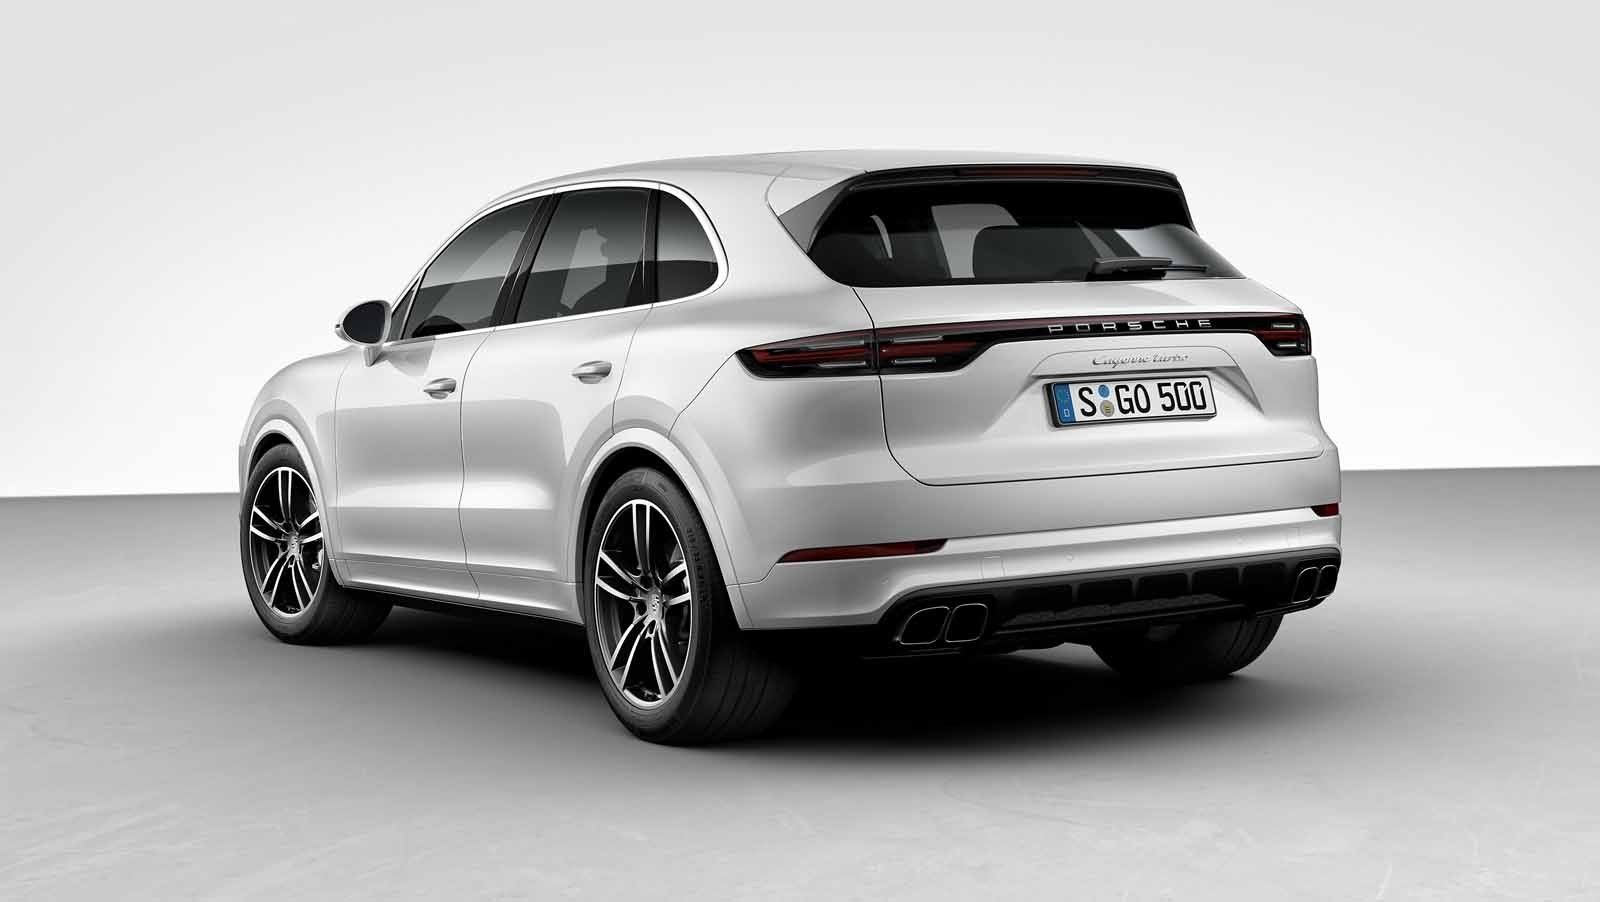 2018 Porsche Cayenne Turbo S Release Date Price And Review Car Gallery Cayenne Turbo Porsche Porche Cayenne